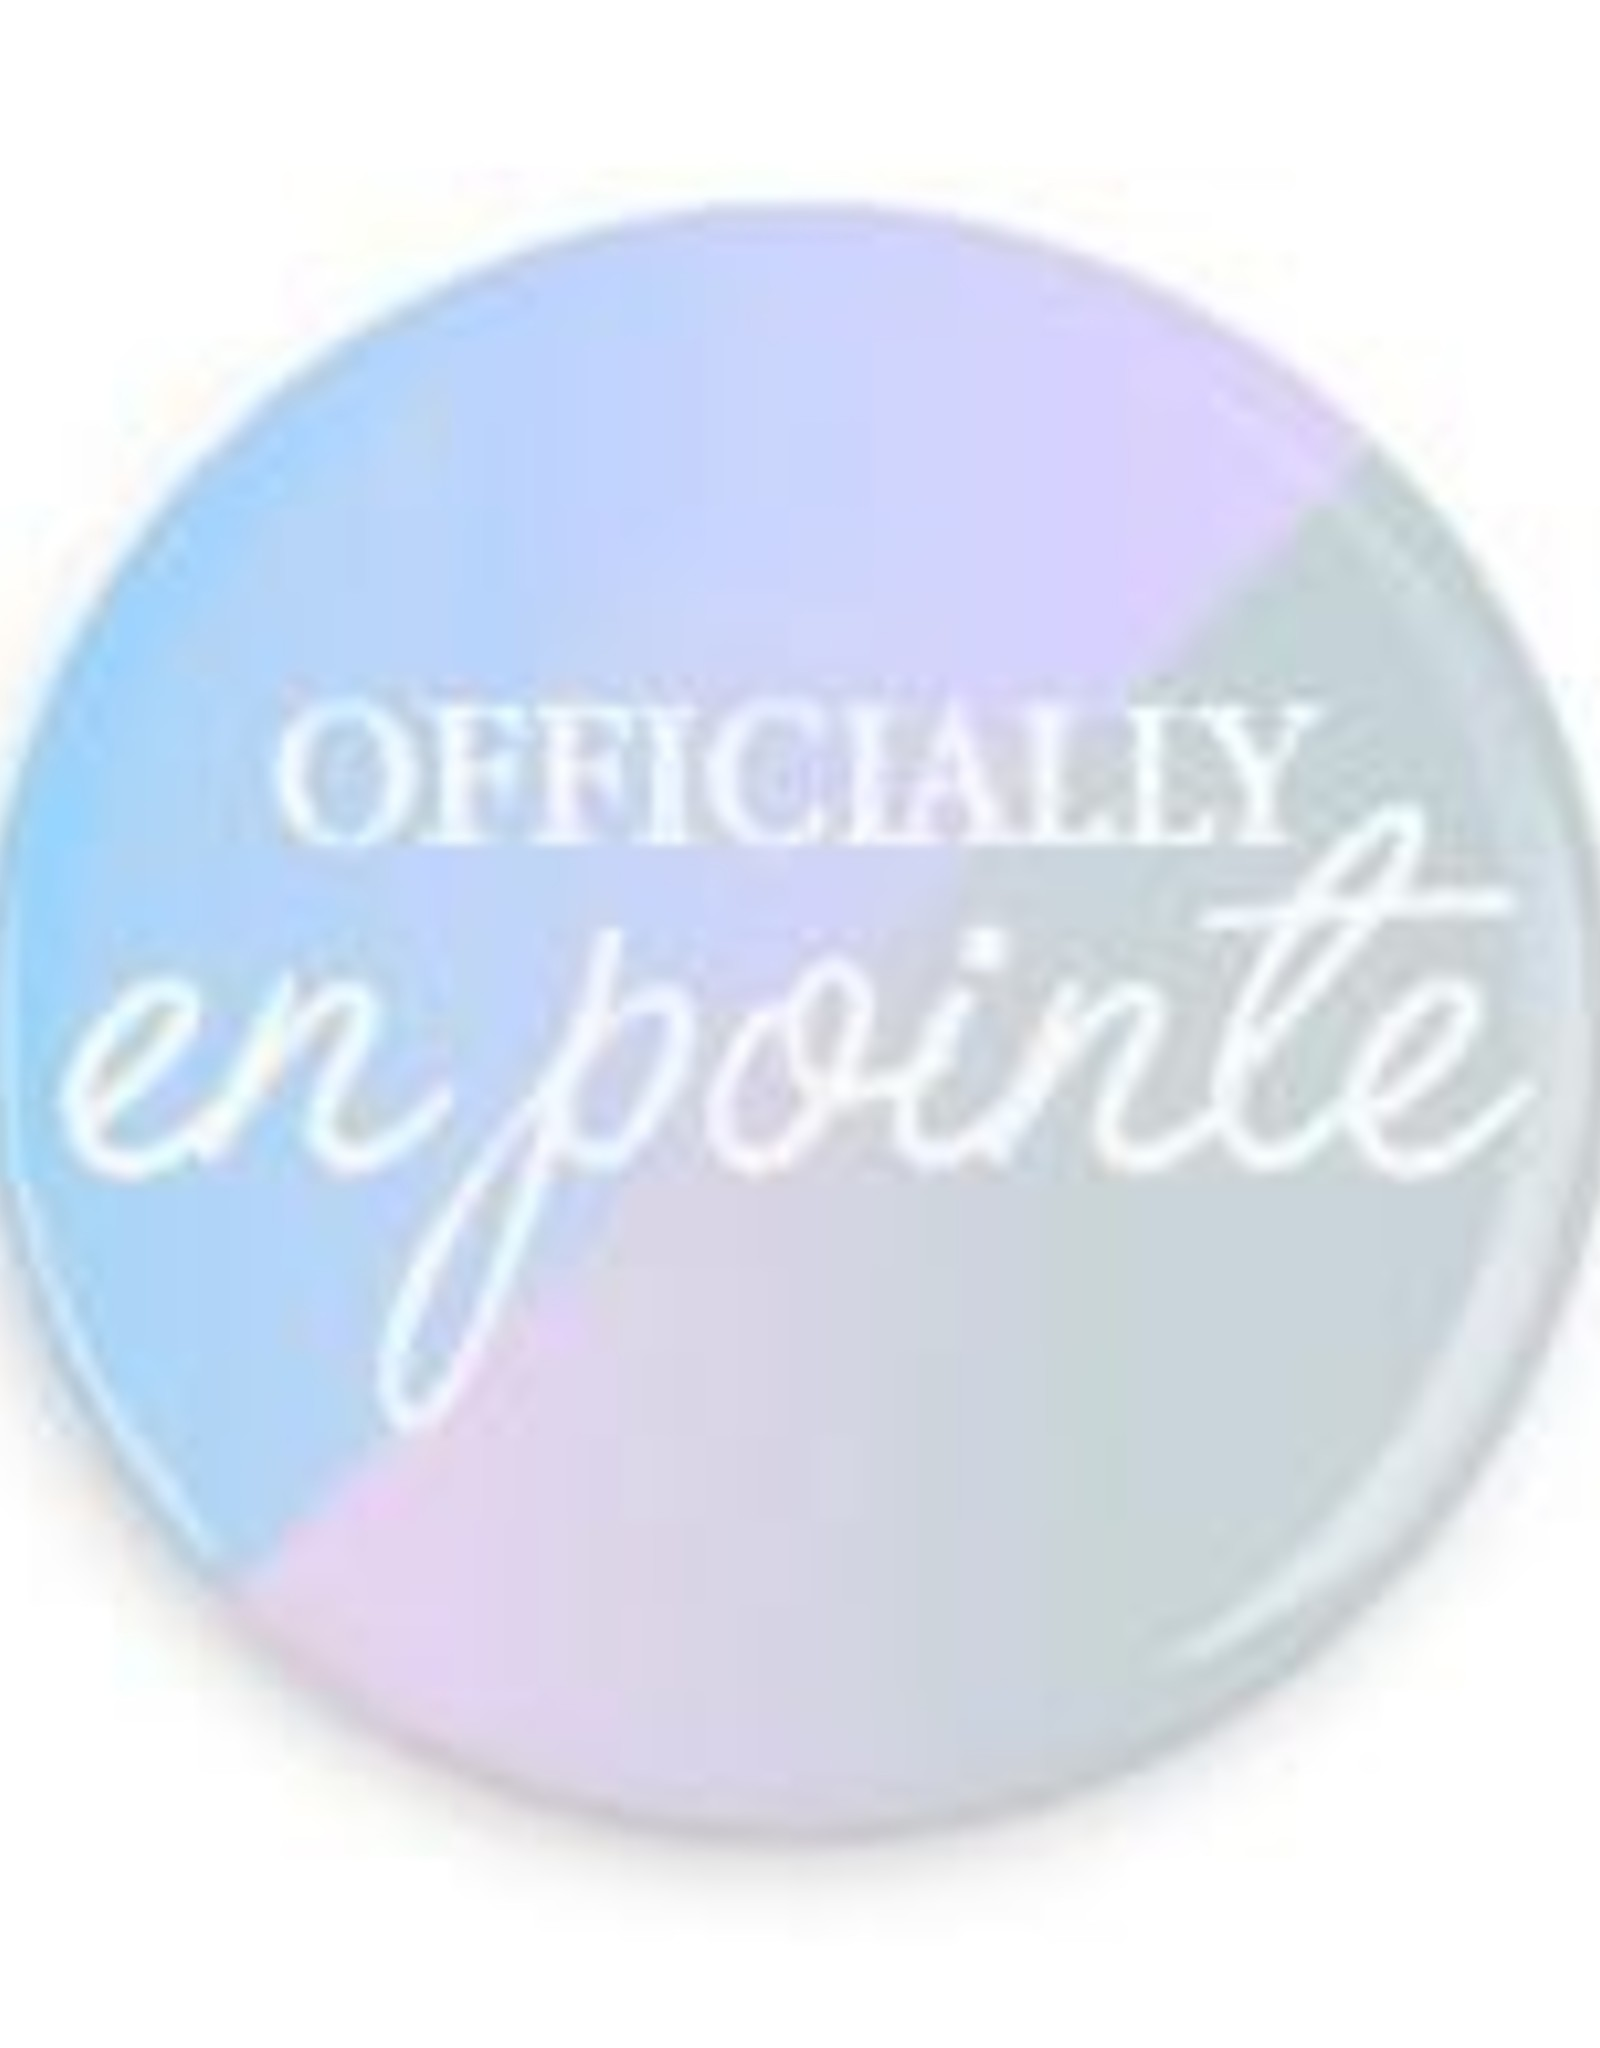 """B+ Printworks 750CC66 3"""" Mirror - Officially en Pointe (Soft colors)"""